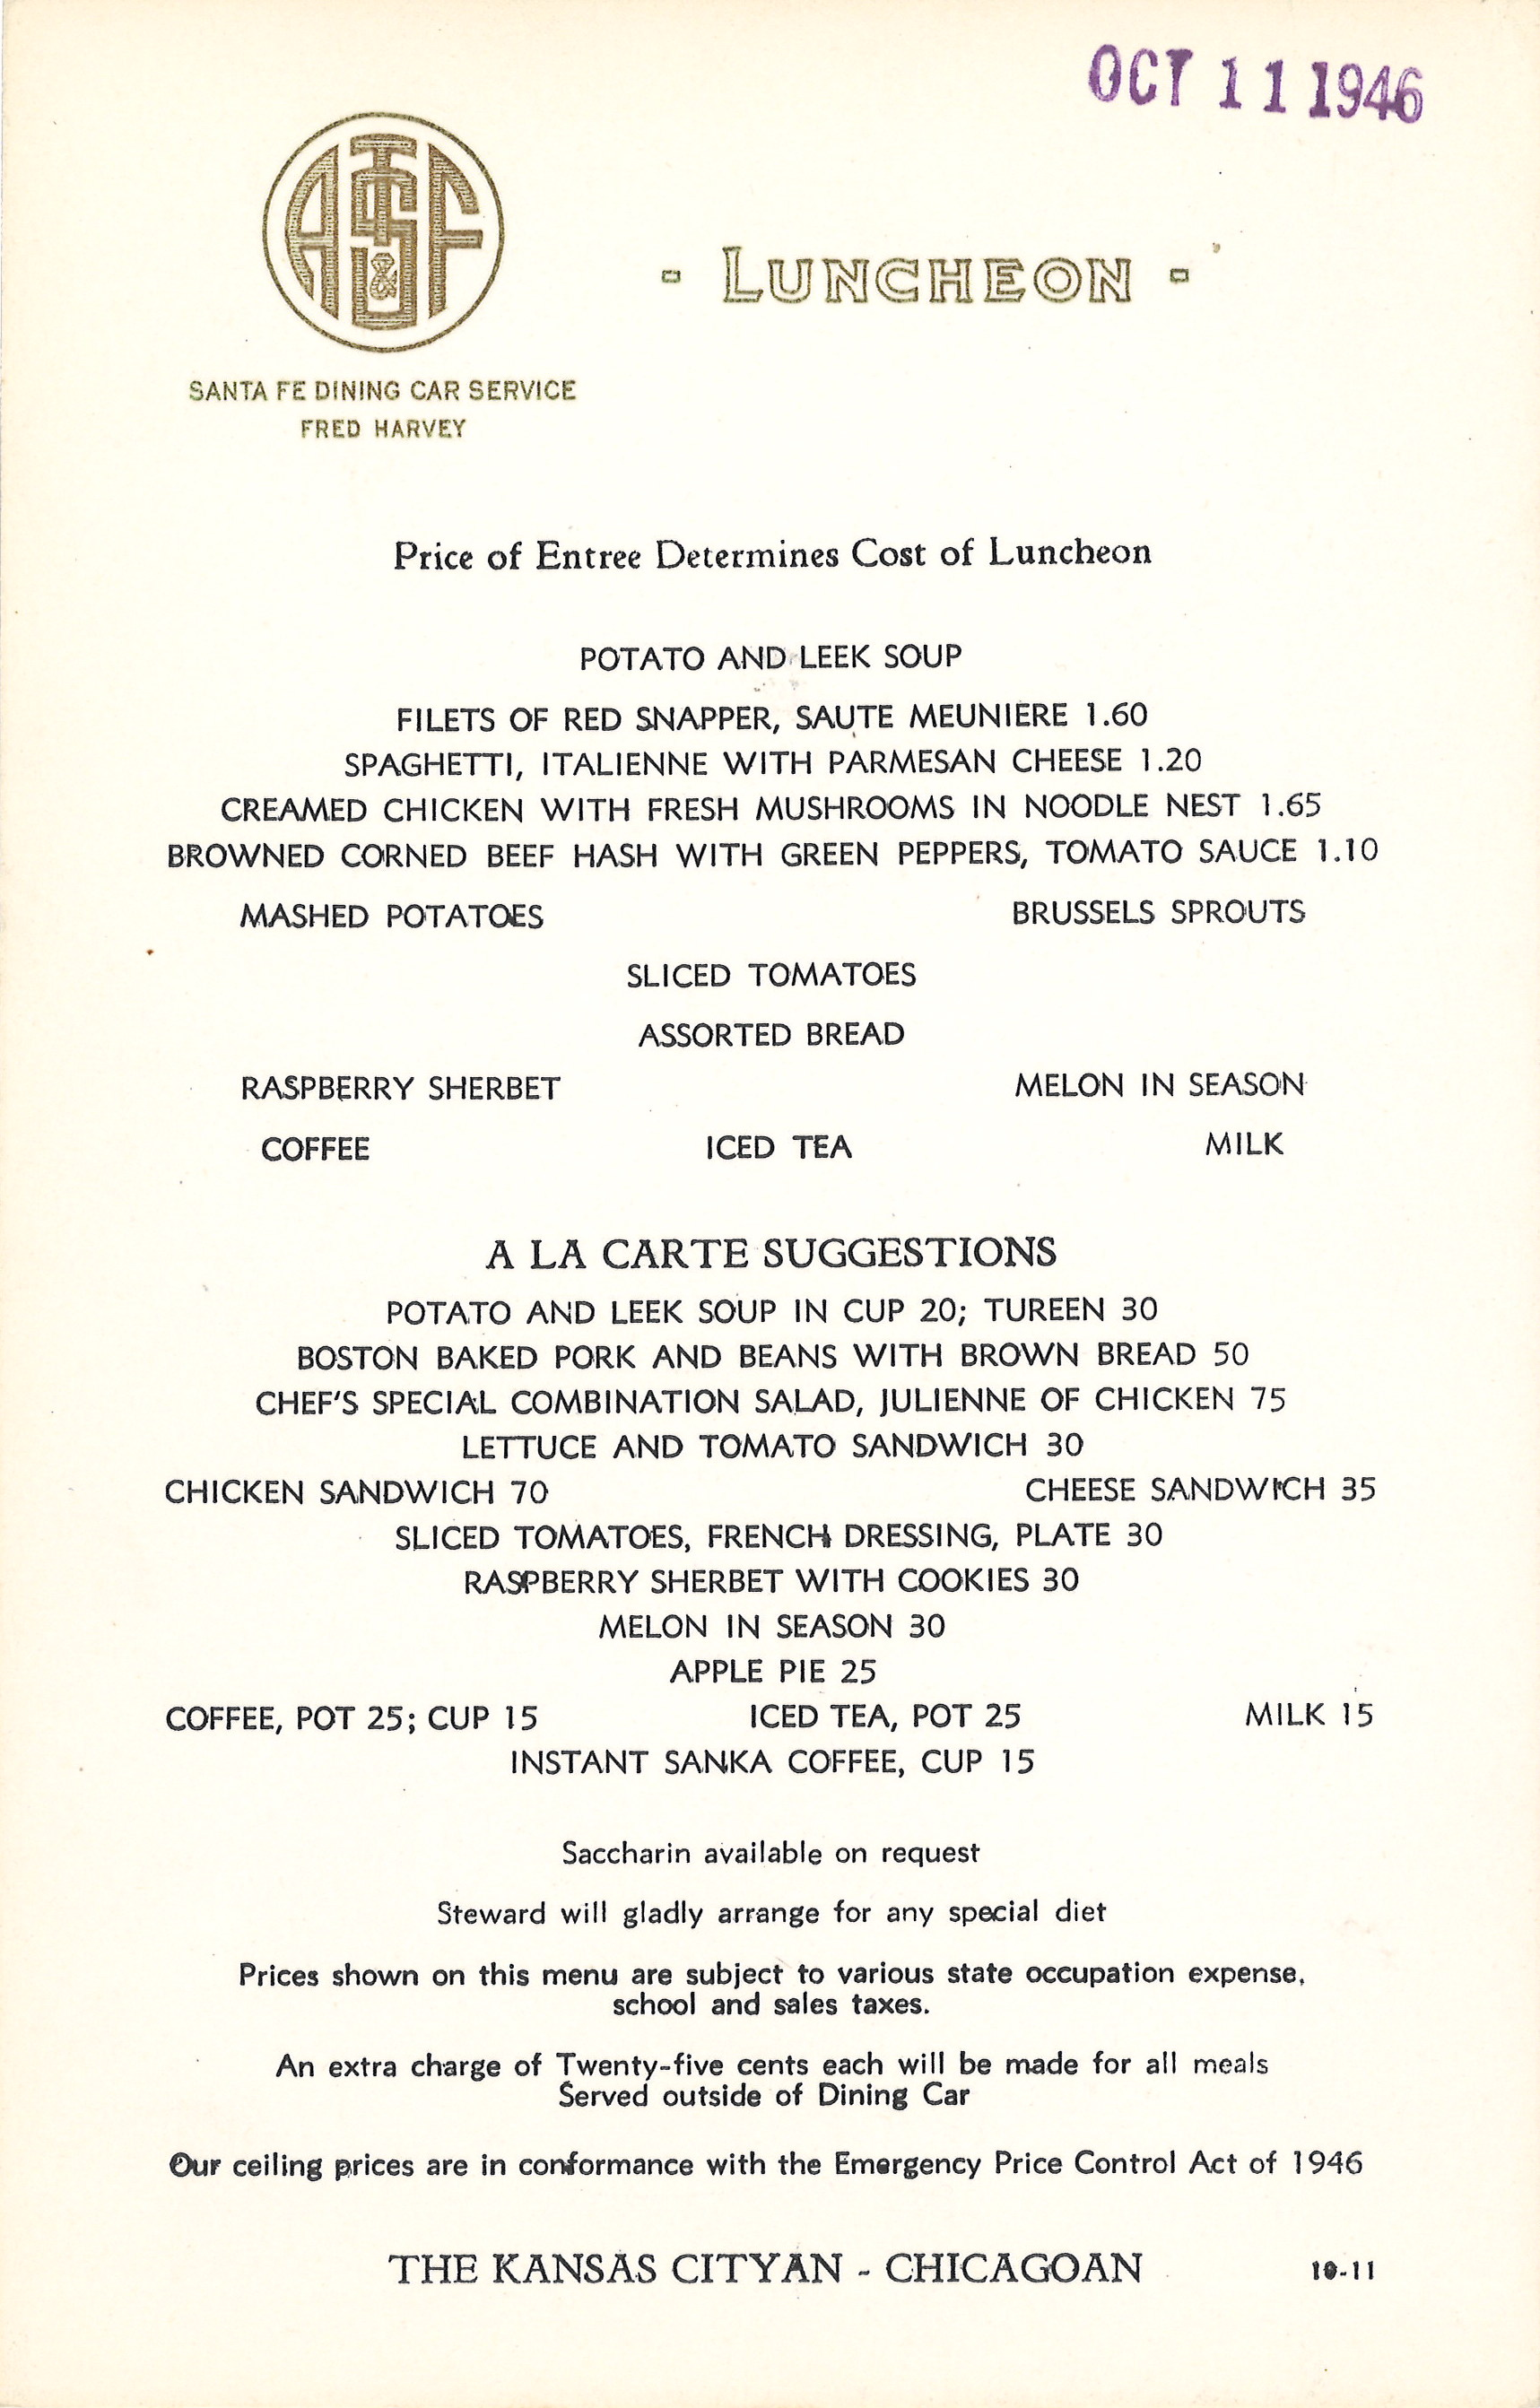 Santa Fe Oct. 11 1946 Lunch Menu.jpg